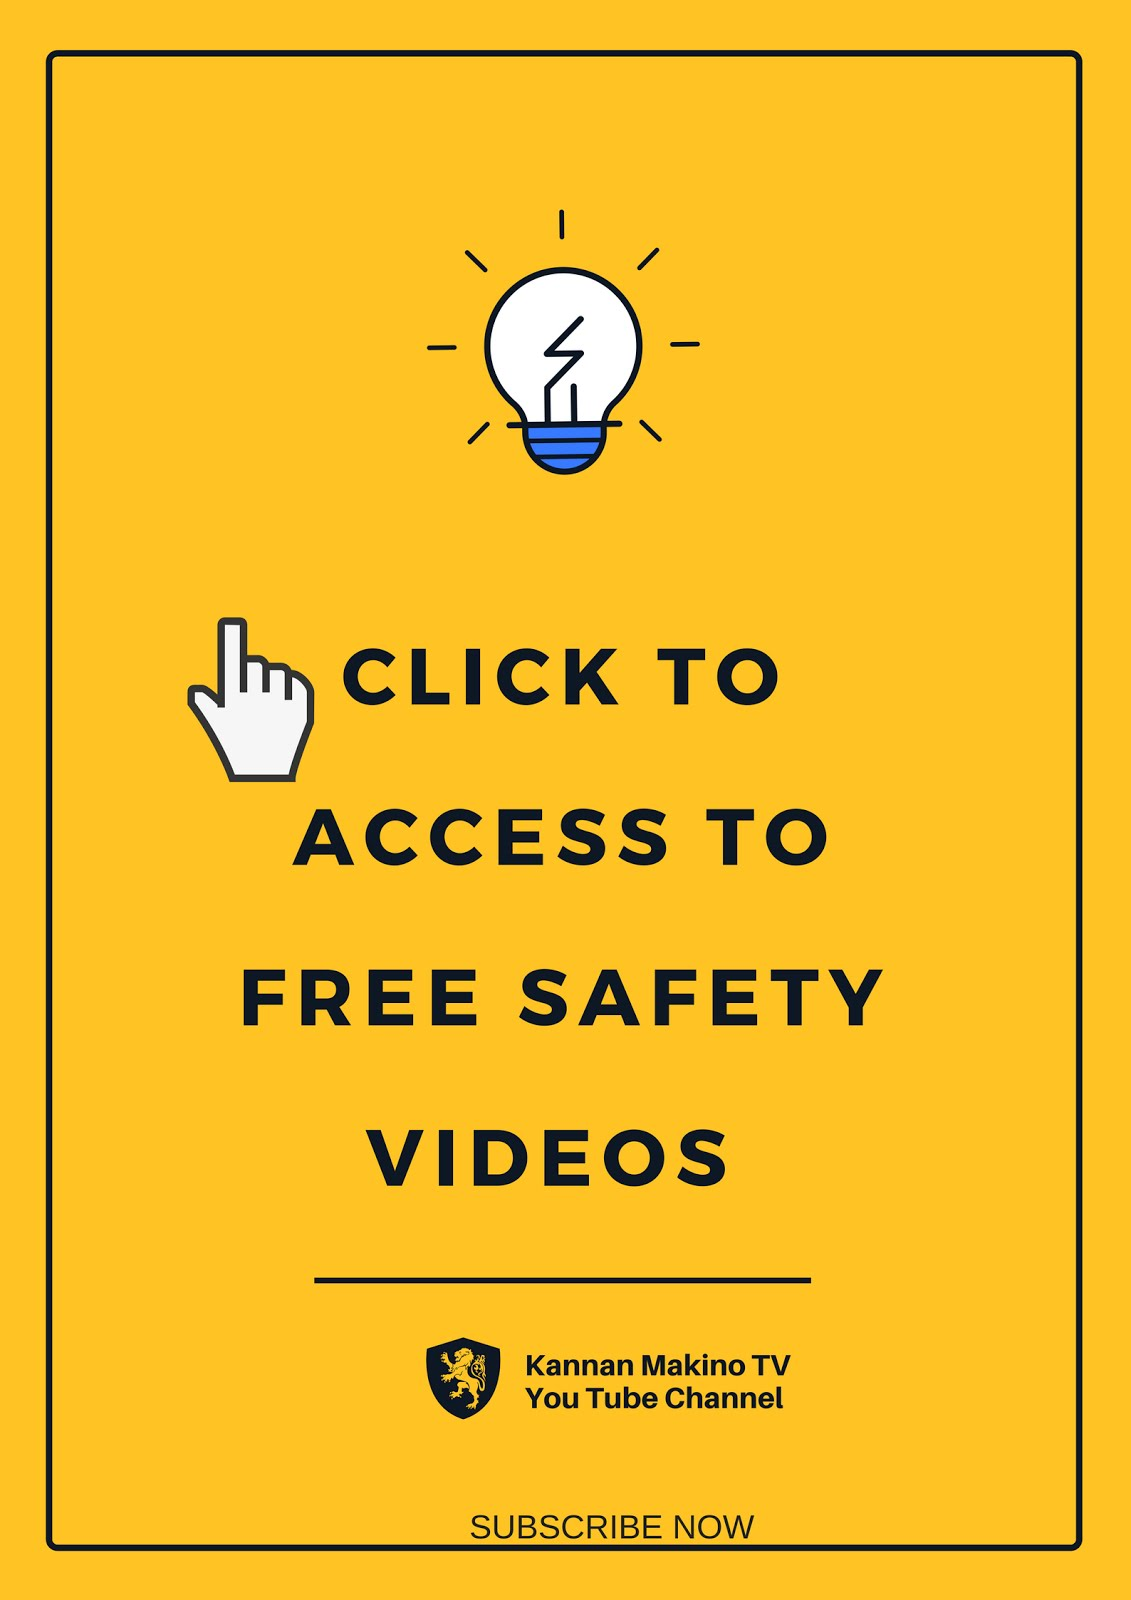 Watch Safety Videos on You Tube